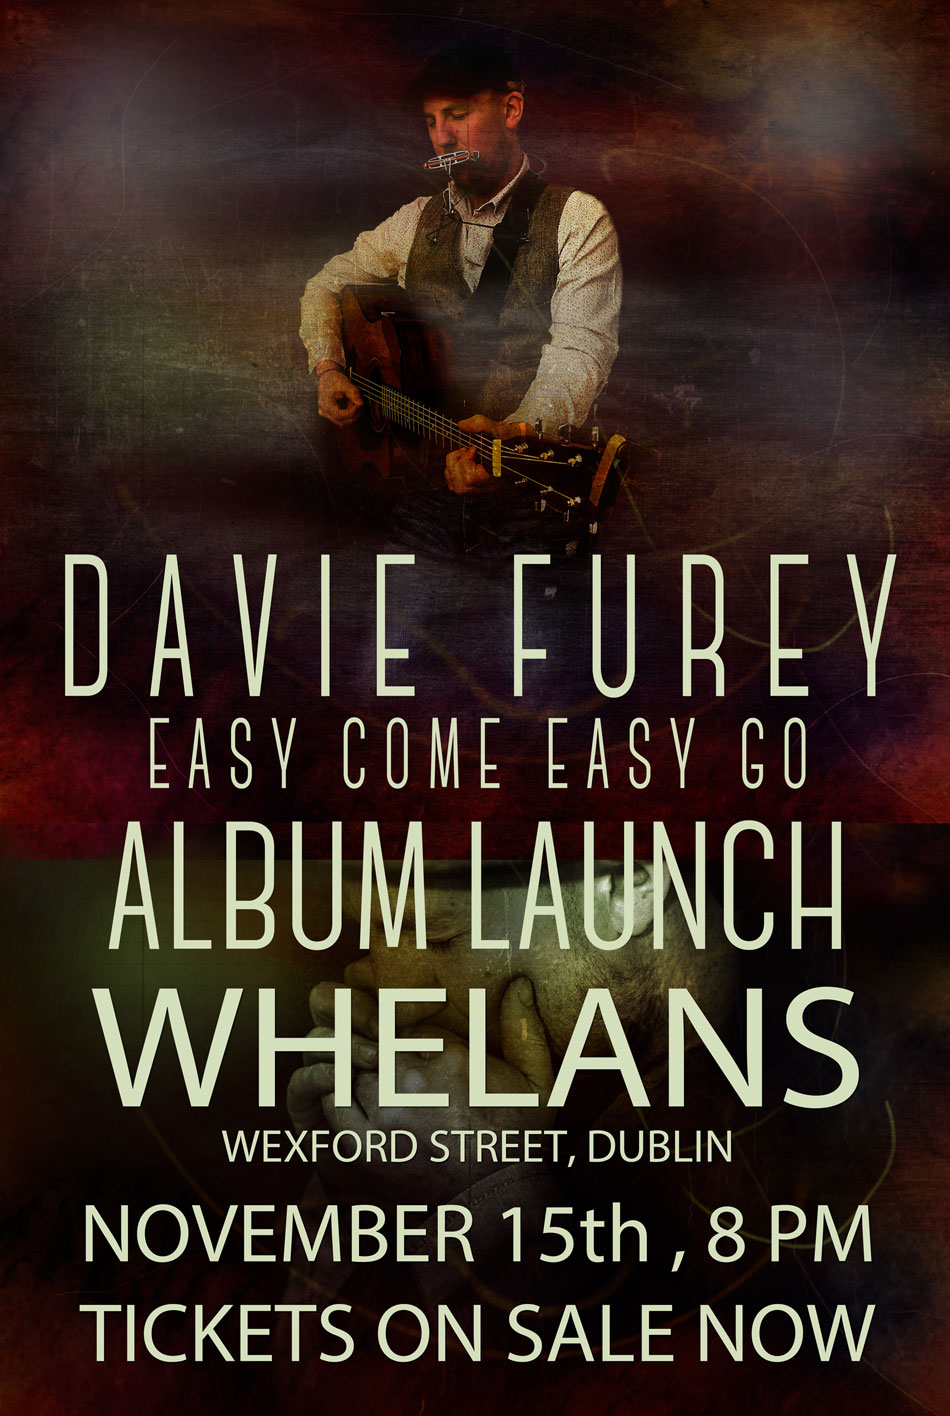 Album Launch Poster for Davie Furey Easy Come Easy Go.